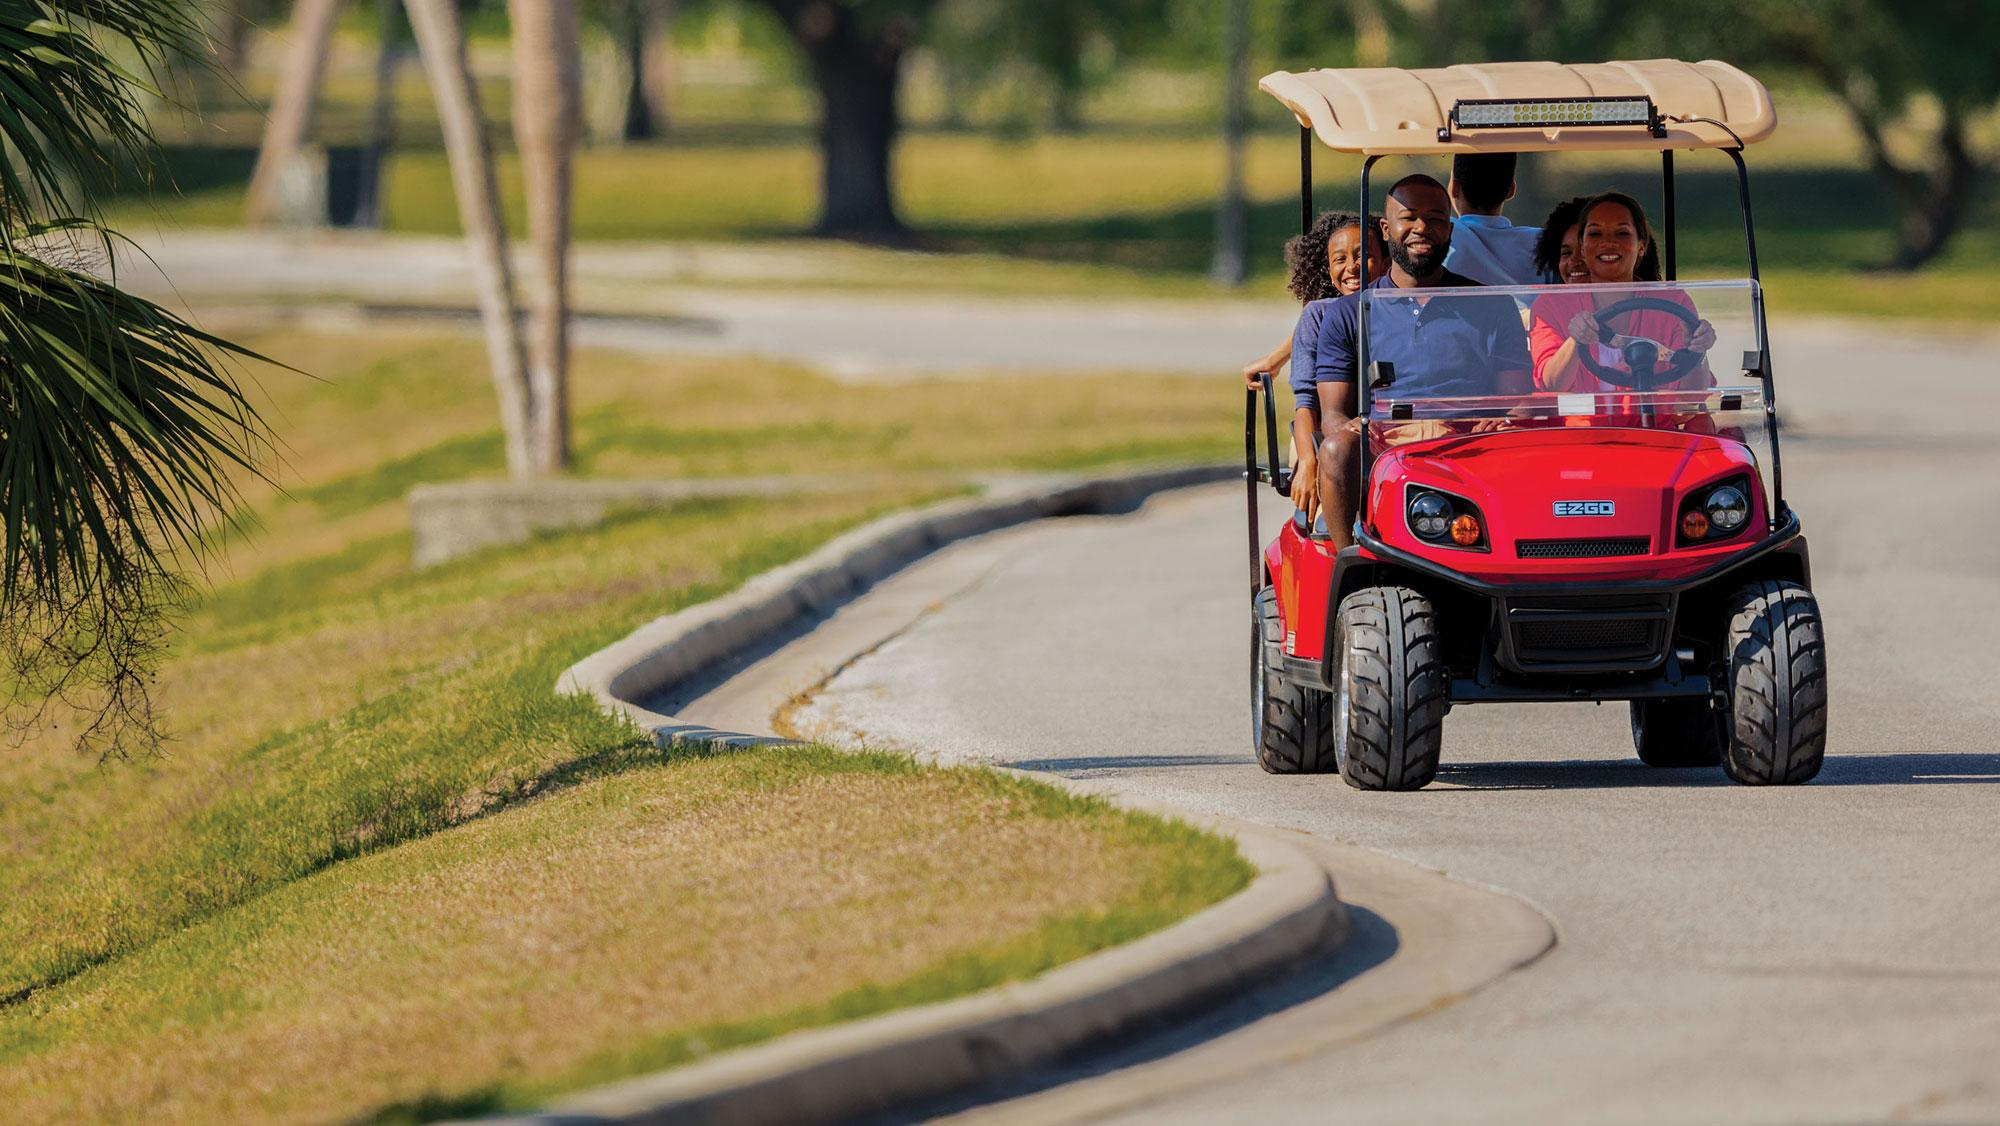 EZGO Express S6 Golf Cart with Top and Light Bar Accessories